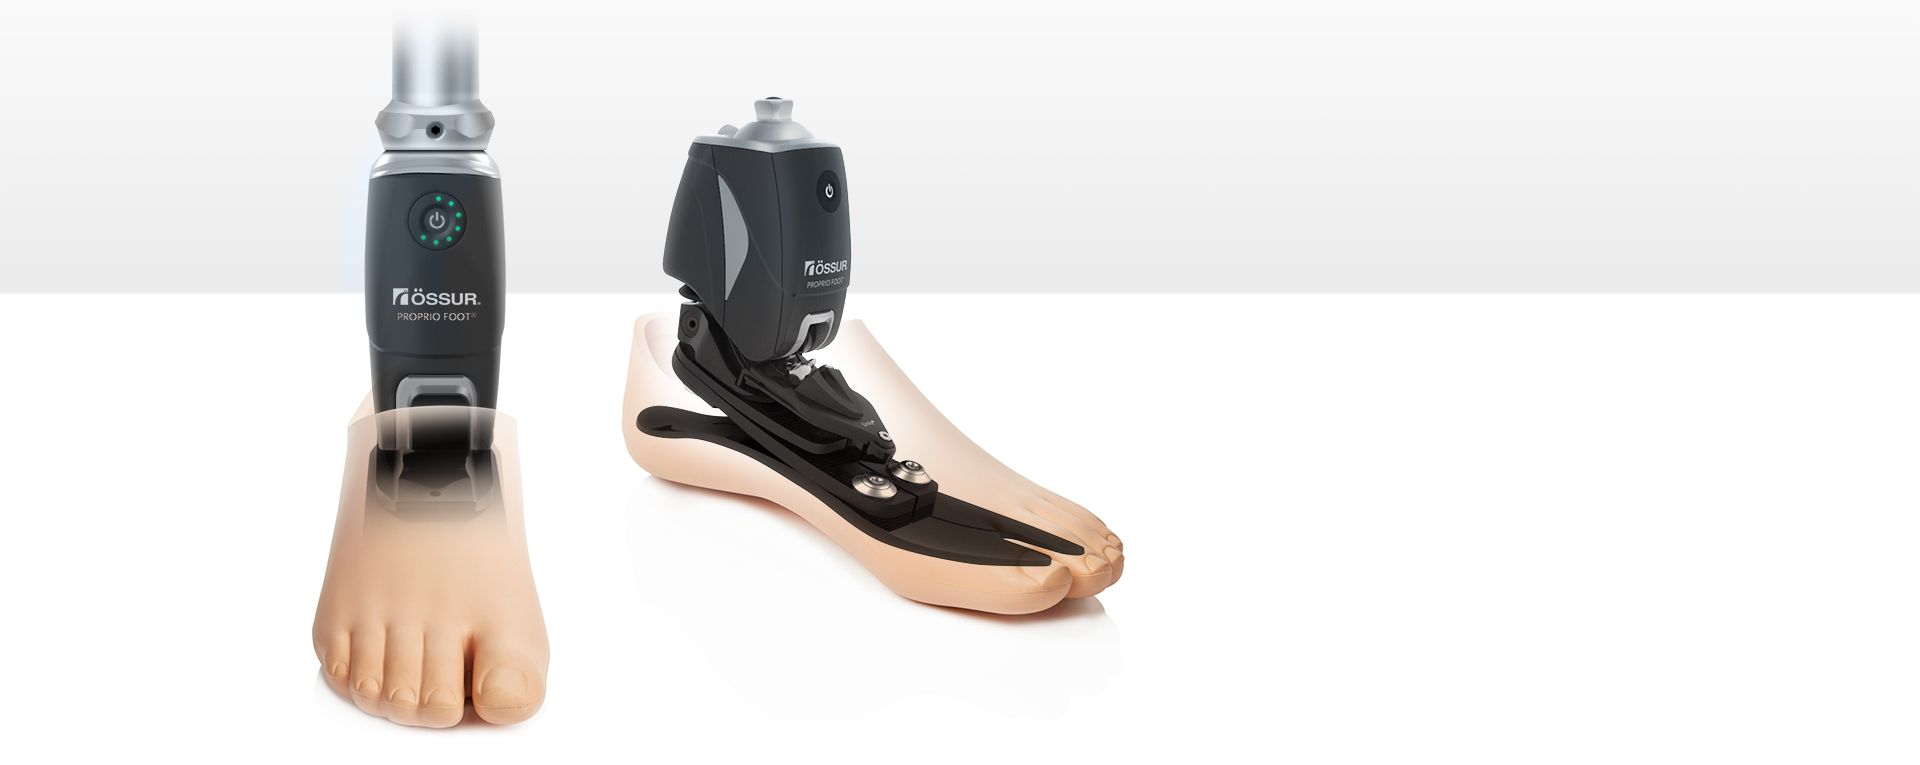 WAACS Össur Bionic Ankle Proprio Foot overview